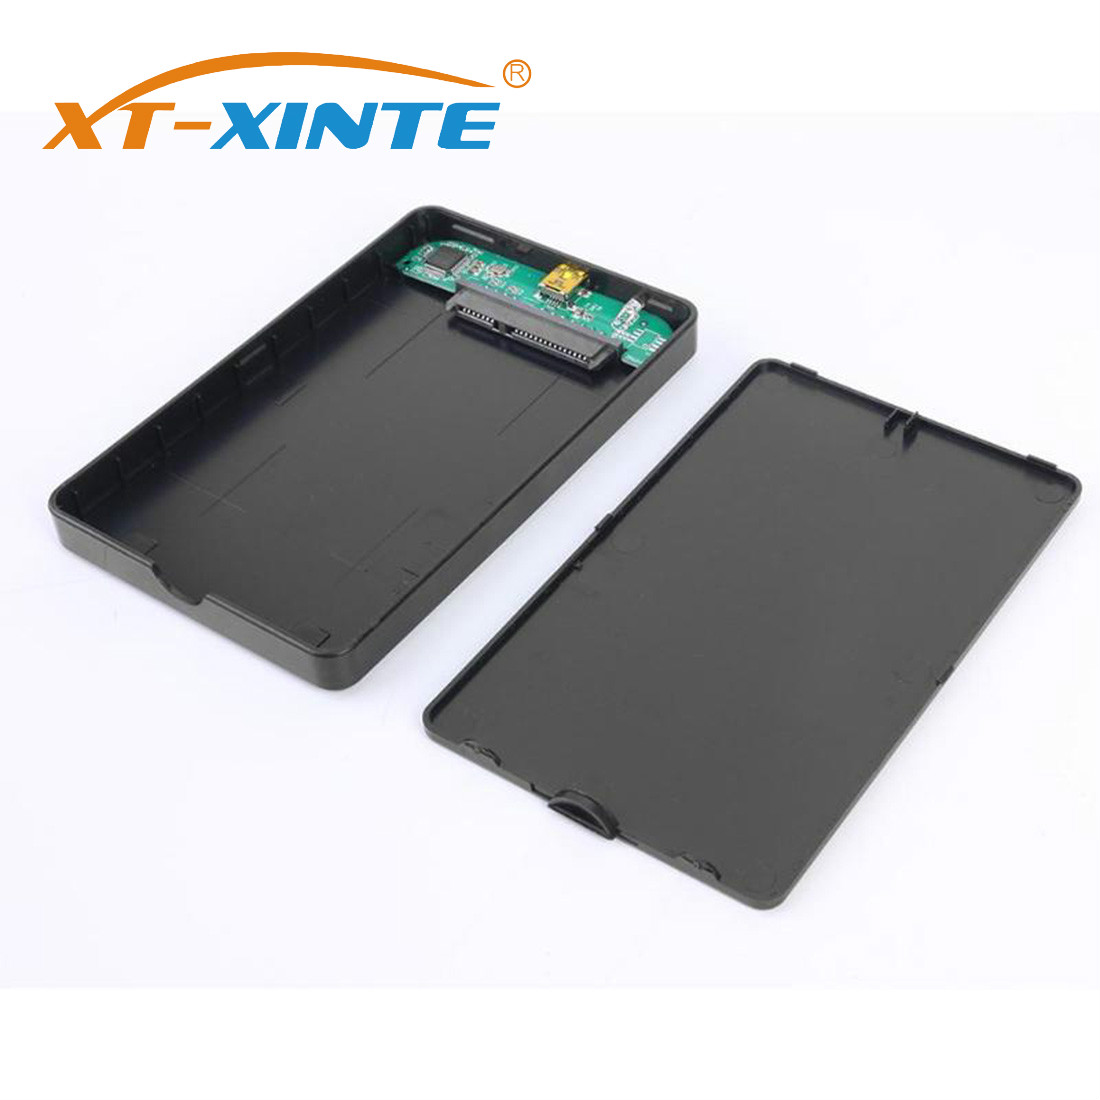 XT-XINTE 2.5inch HDD SSD Case Sata To USB 3.0 2.0 Adapter Free 5Gbps Box Hard Drive Enclosure For WIndows For Mac OS Support 2TB